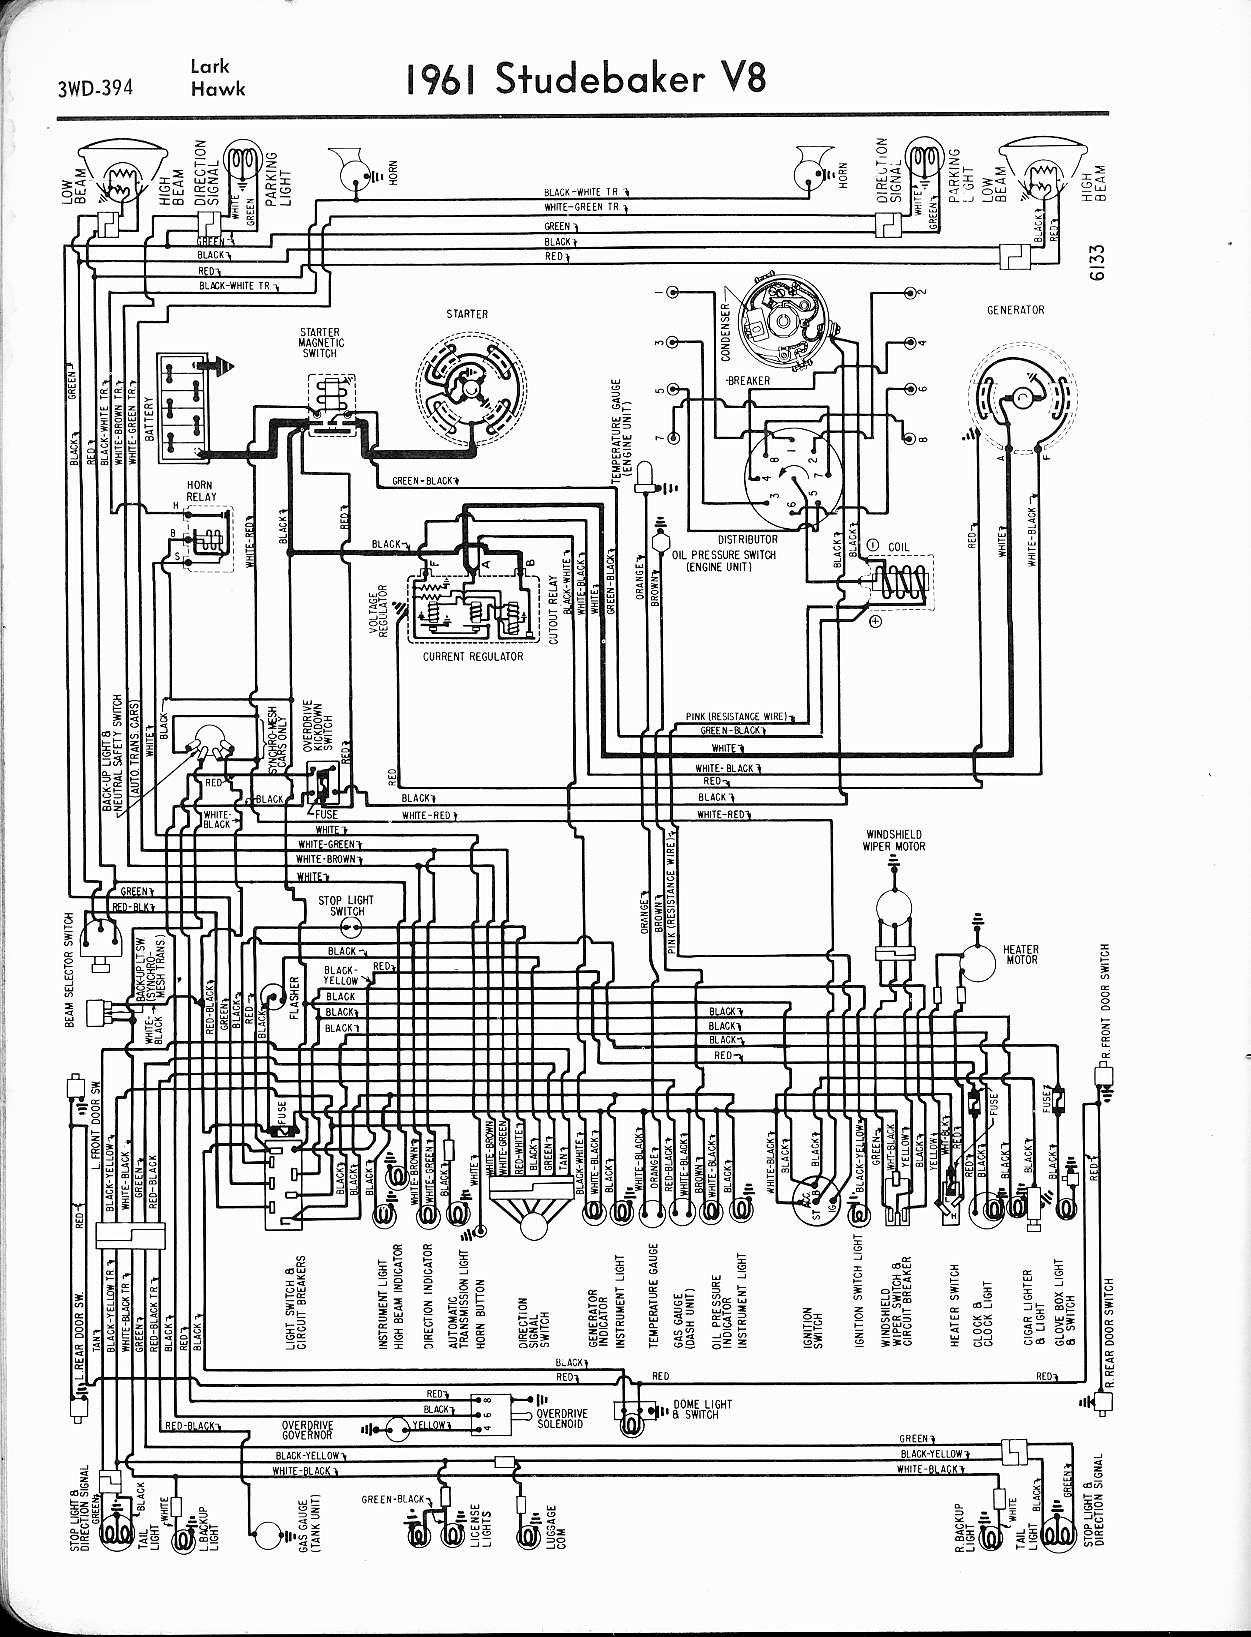 MWire5765 394 studebaker wiring diagrams the old car manual project studebaker wiring diagrams at cos-gaming.co